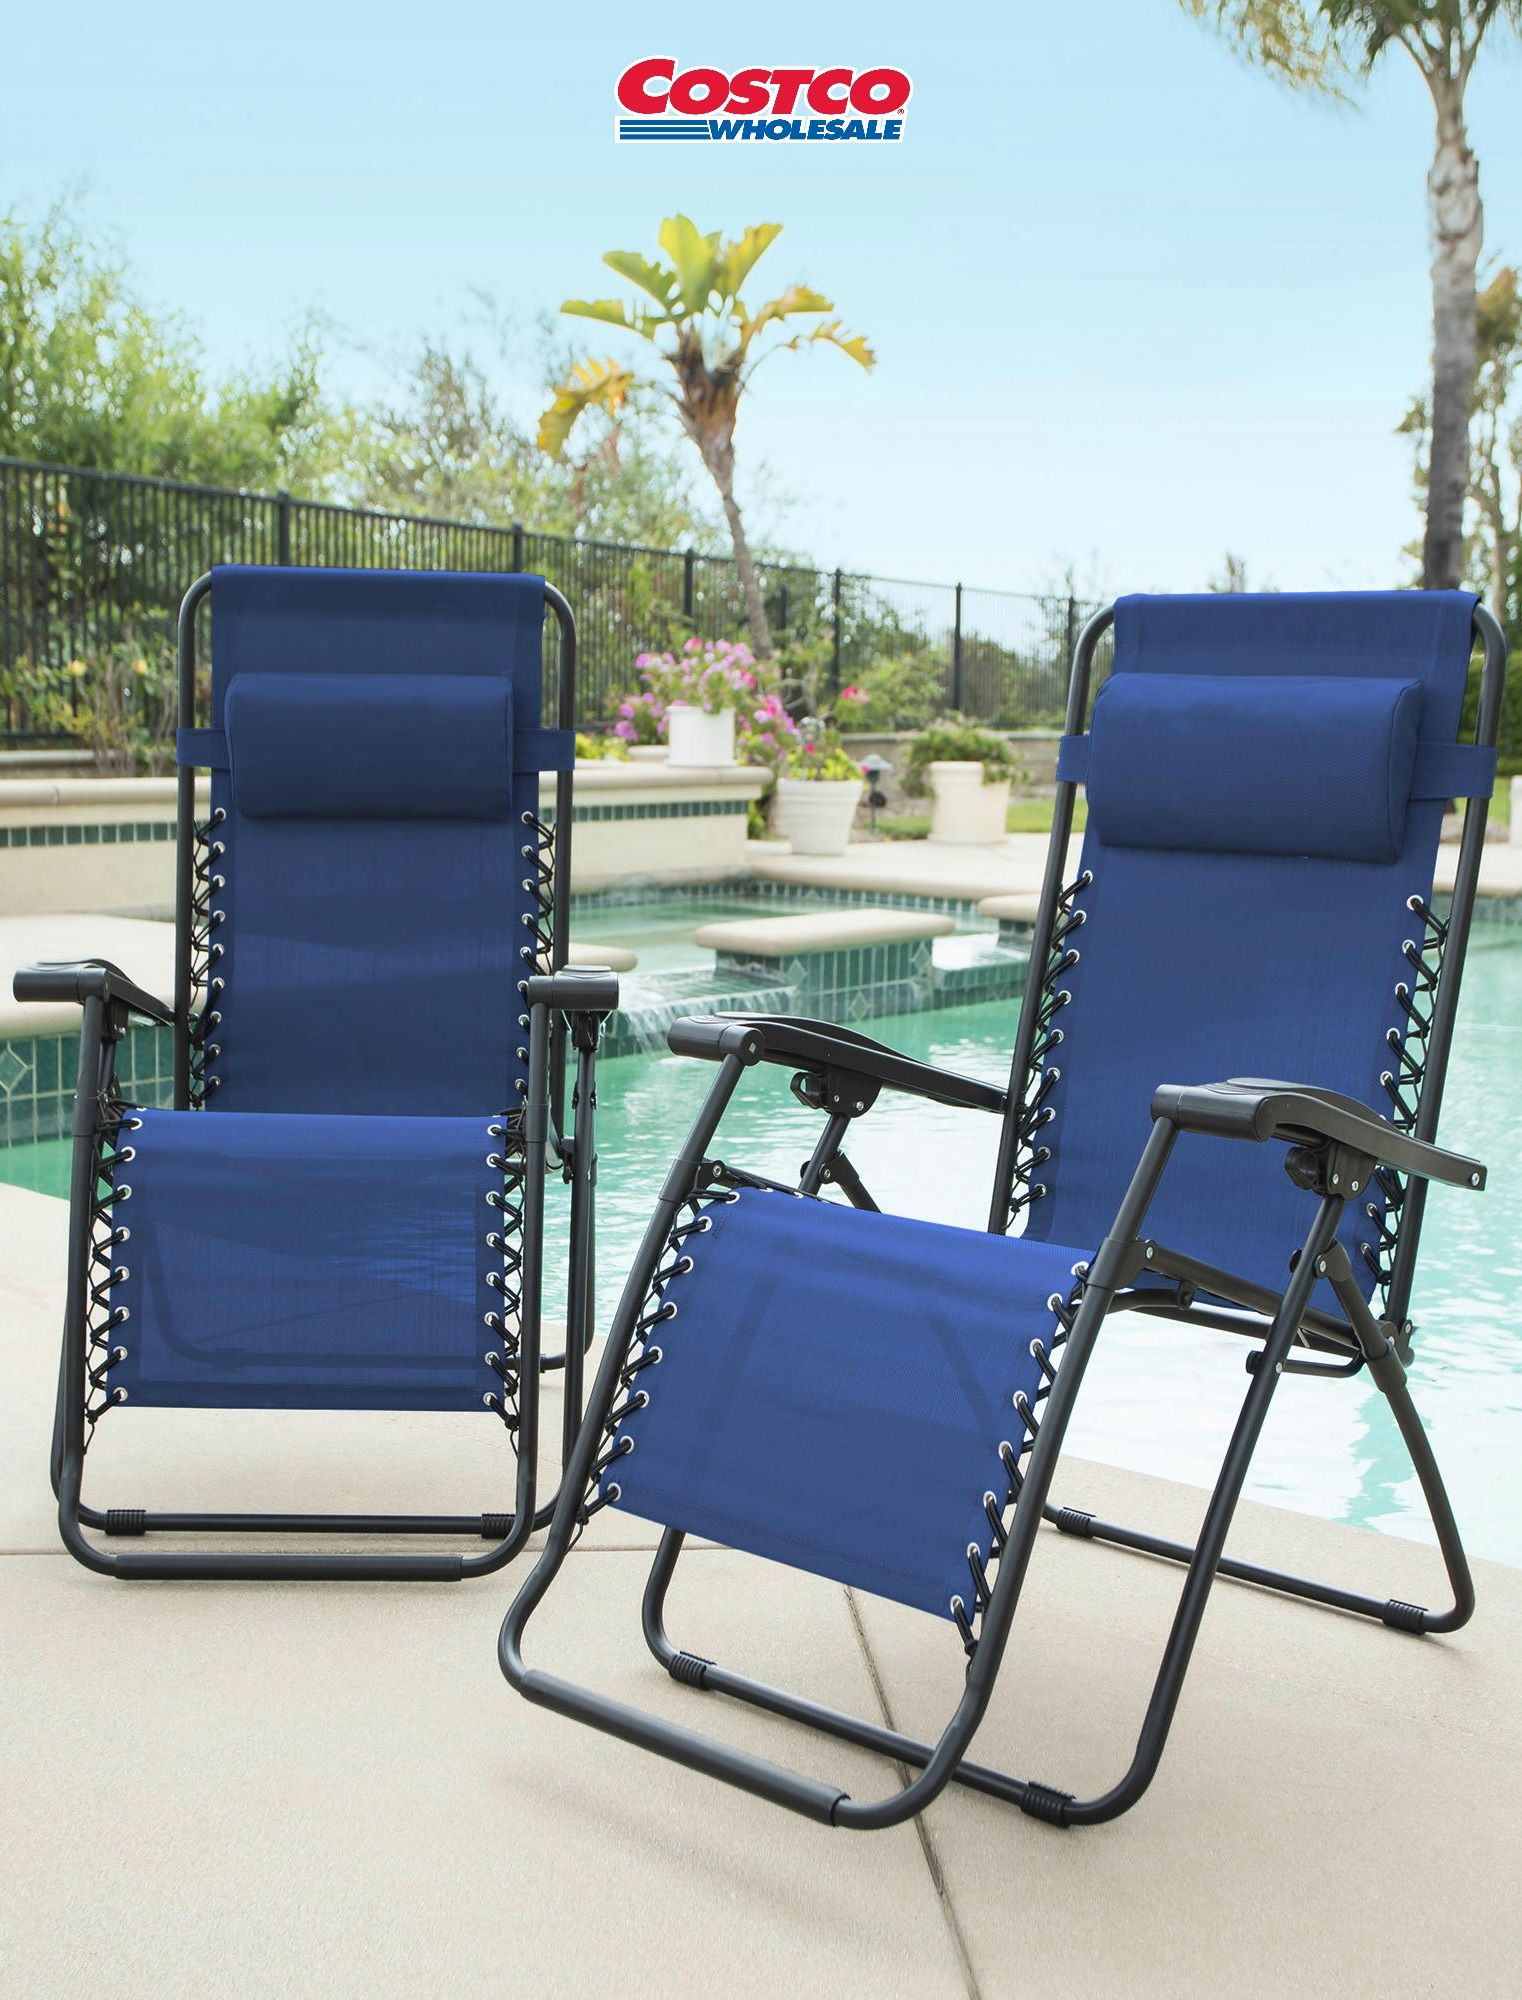 Zero Gravity Reclining Outdoor Lounge Chair 2 Pack Lounge Chair Outdoor Zero Gravity Chair Reclining Outdoor Chair